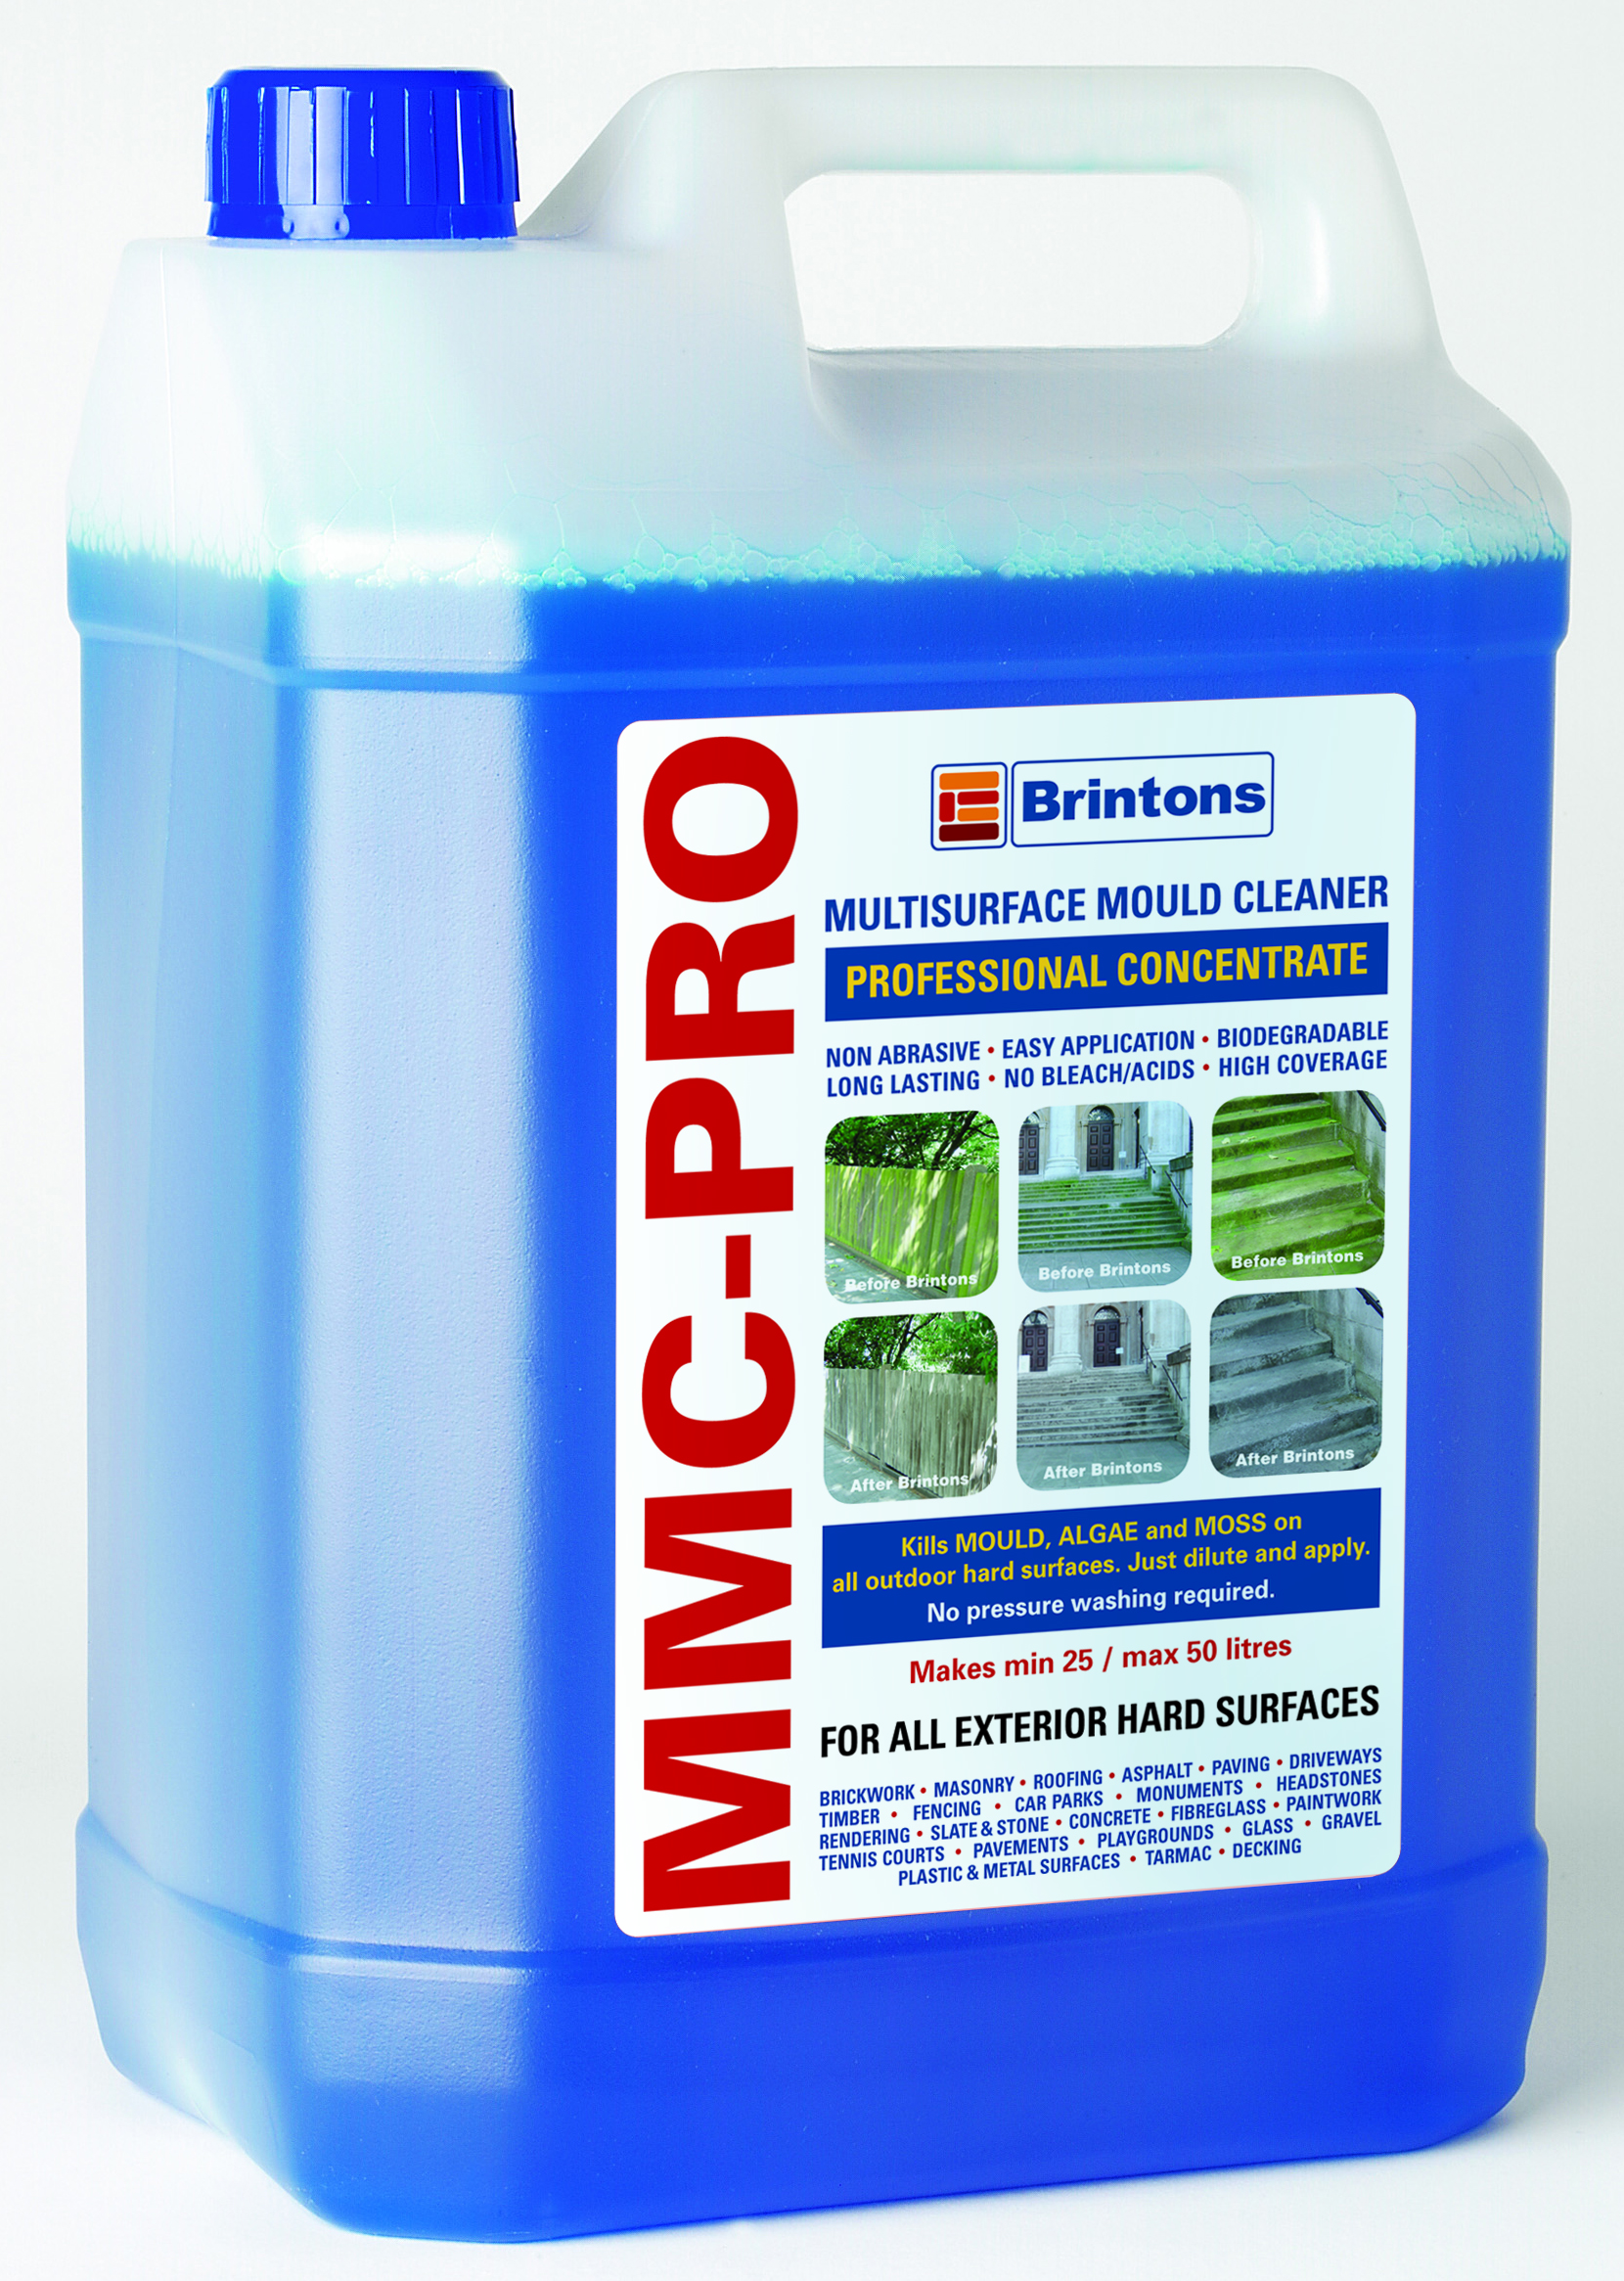 MMC Pro 5lt Hard Surface Cleaner